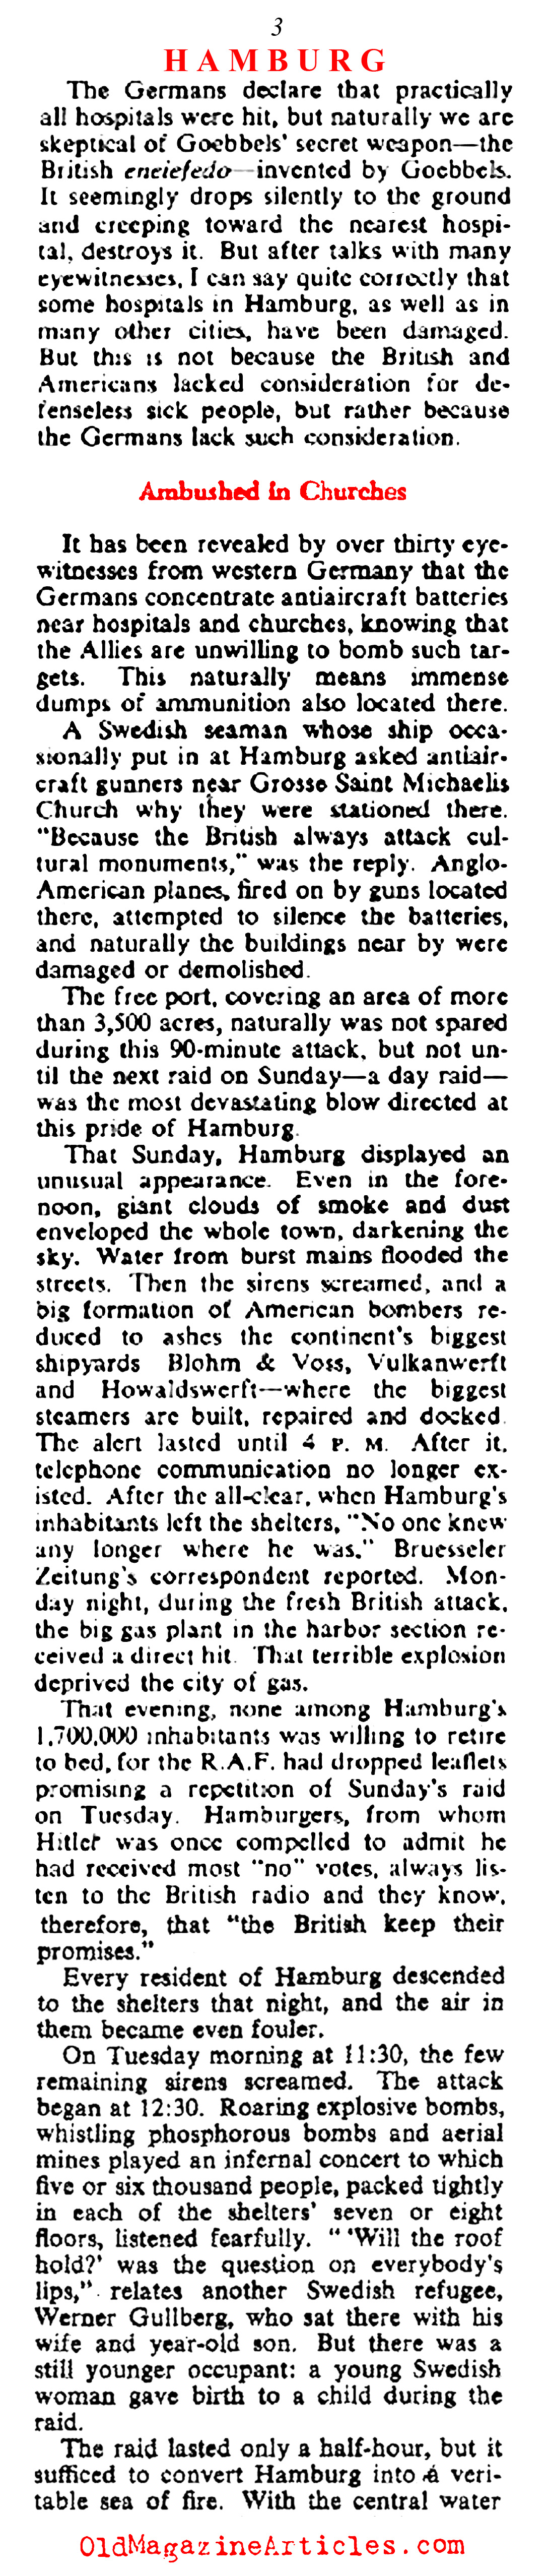 'They Saw Hamburg Die' (Collier's Magazine, 1943)